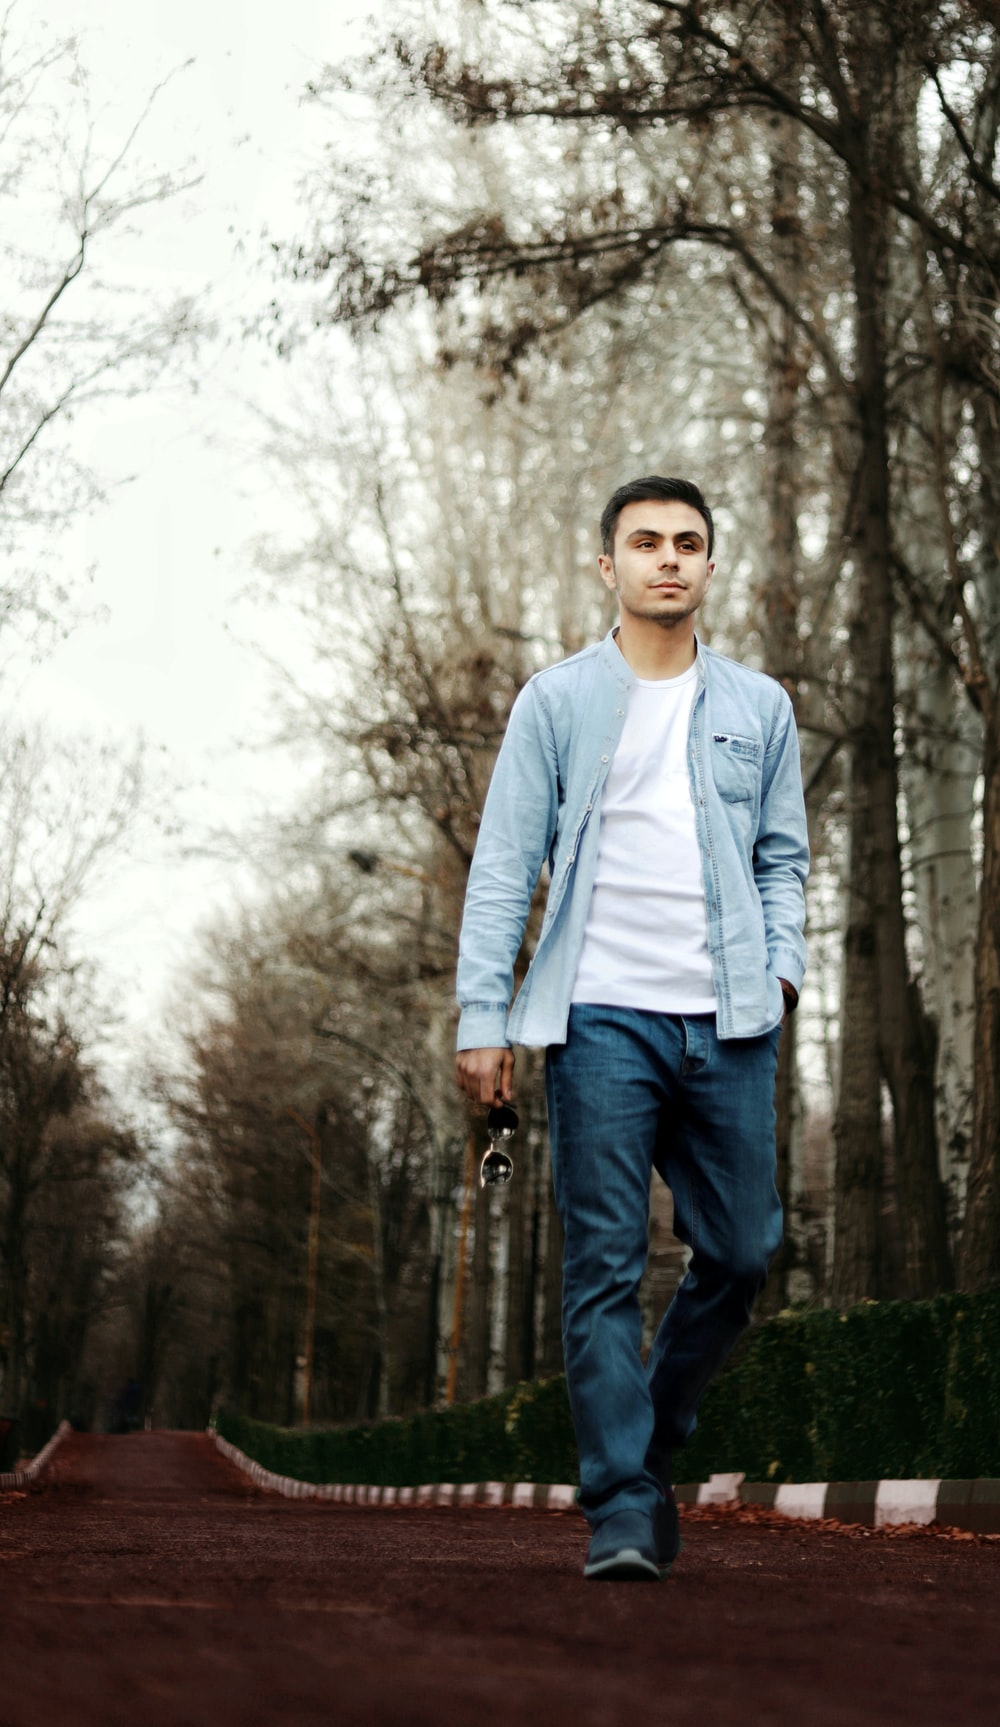 man in white dress shirt and blue denim jeans standing on green grass field during daytime